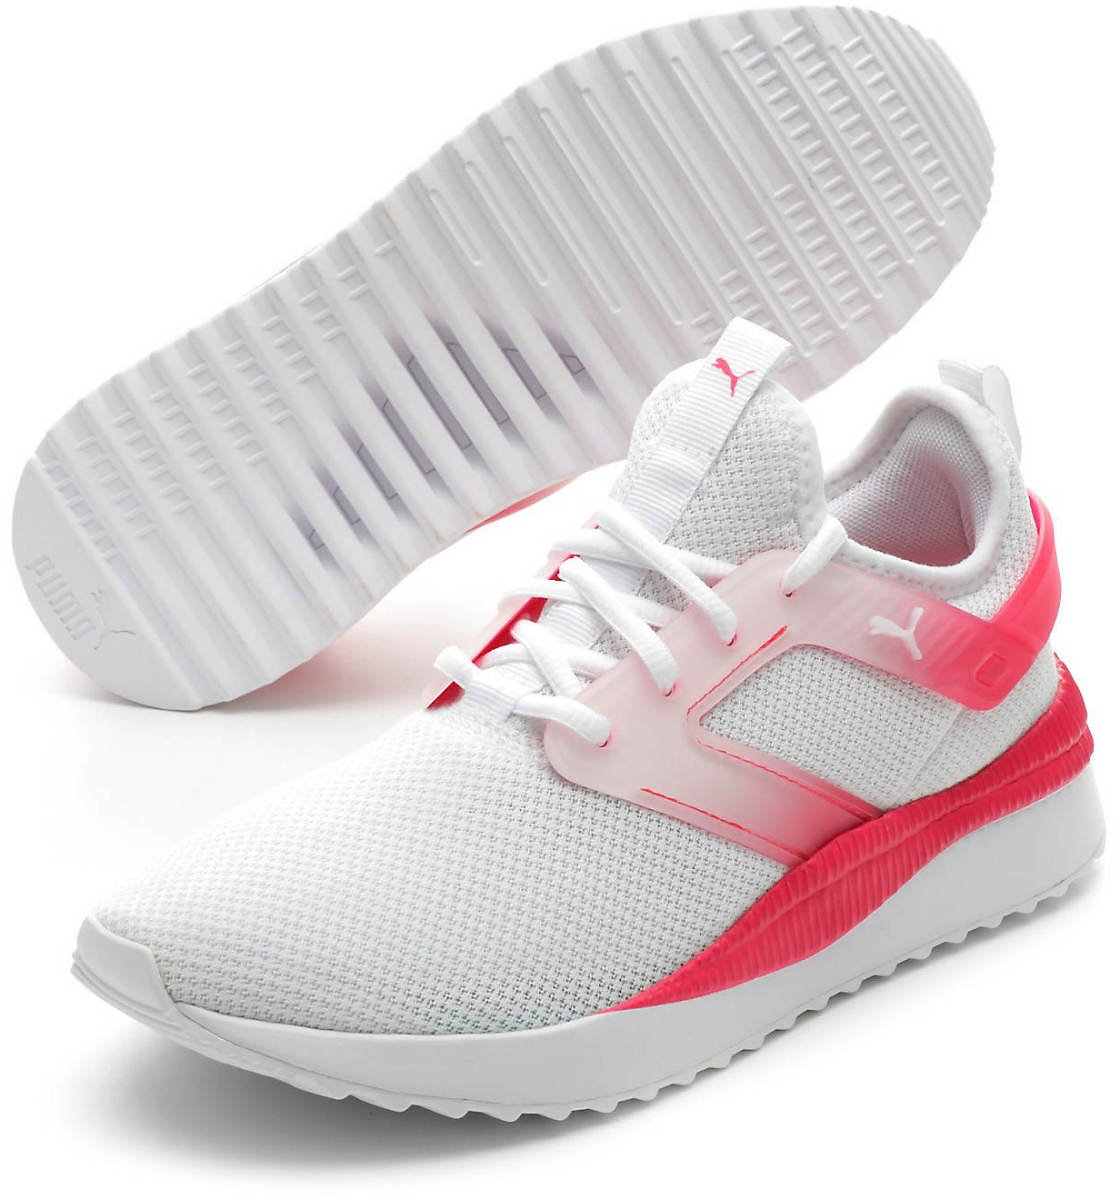 PUMA Women's Pacer Next Excel Running Shoes